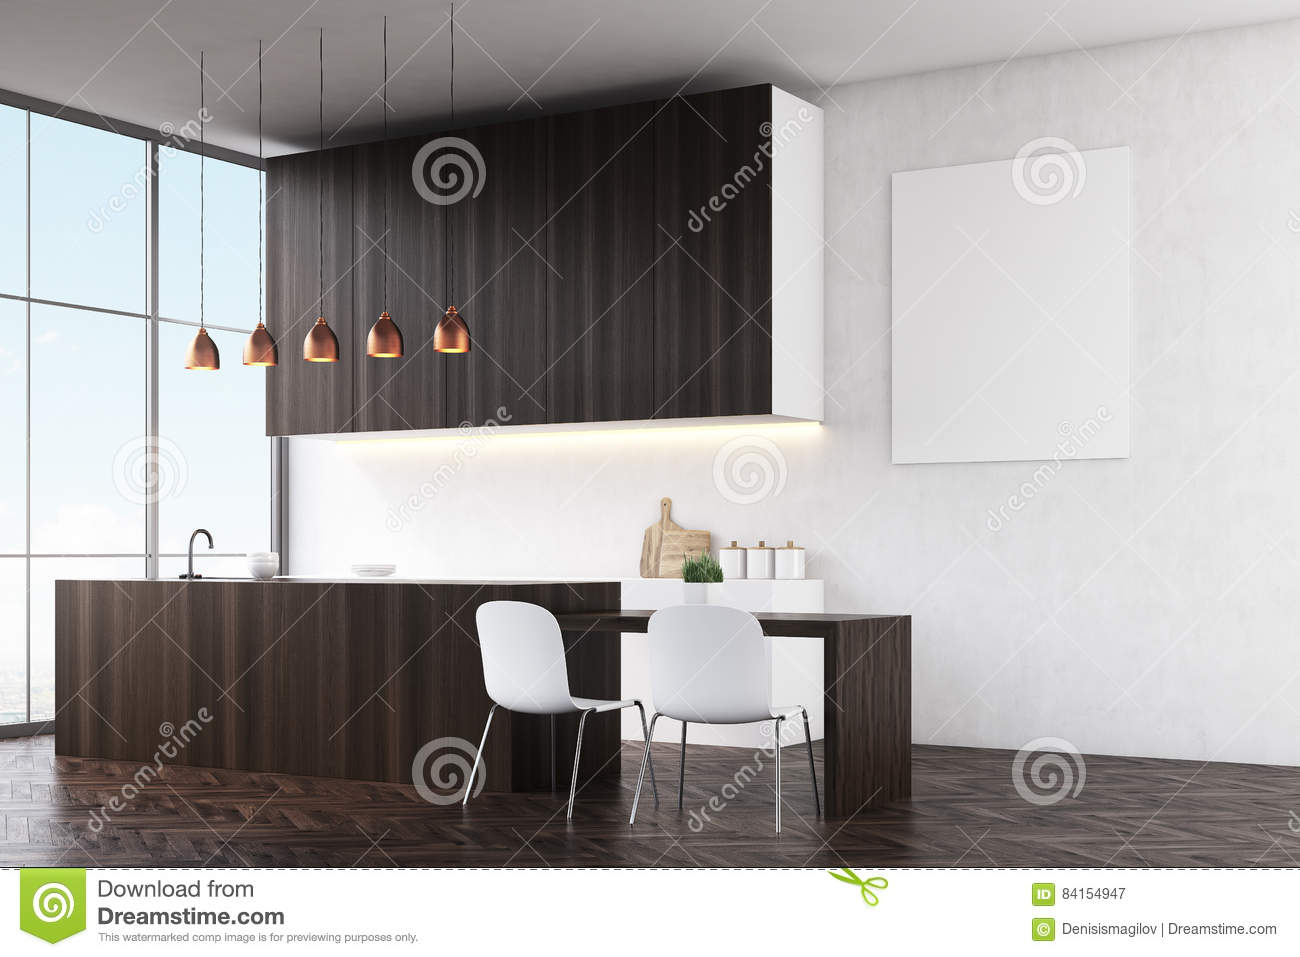 Kitchen With White Walls Dark Wooden Counters And White Chairs Near A Dining Table Stock Illustration Illustration Of Banner Design 84154947